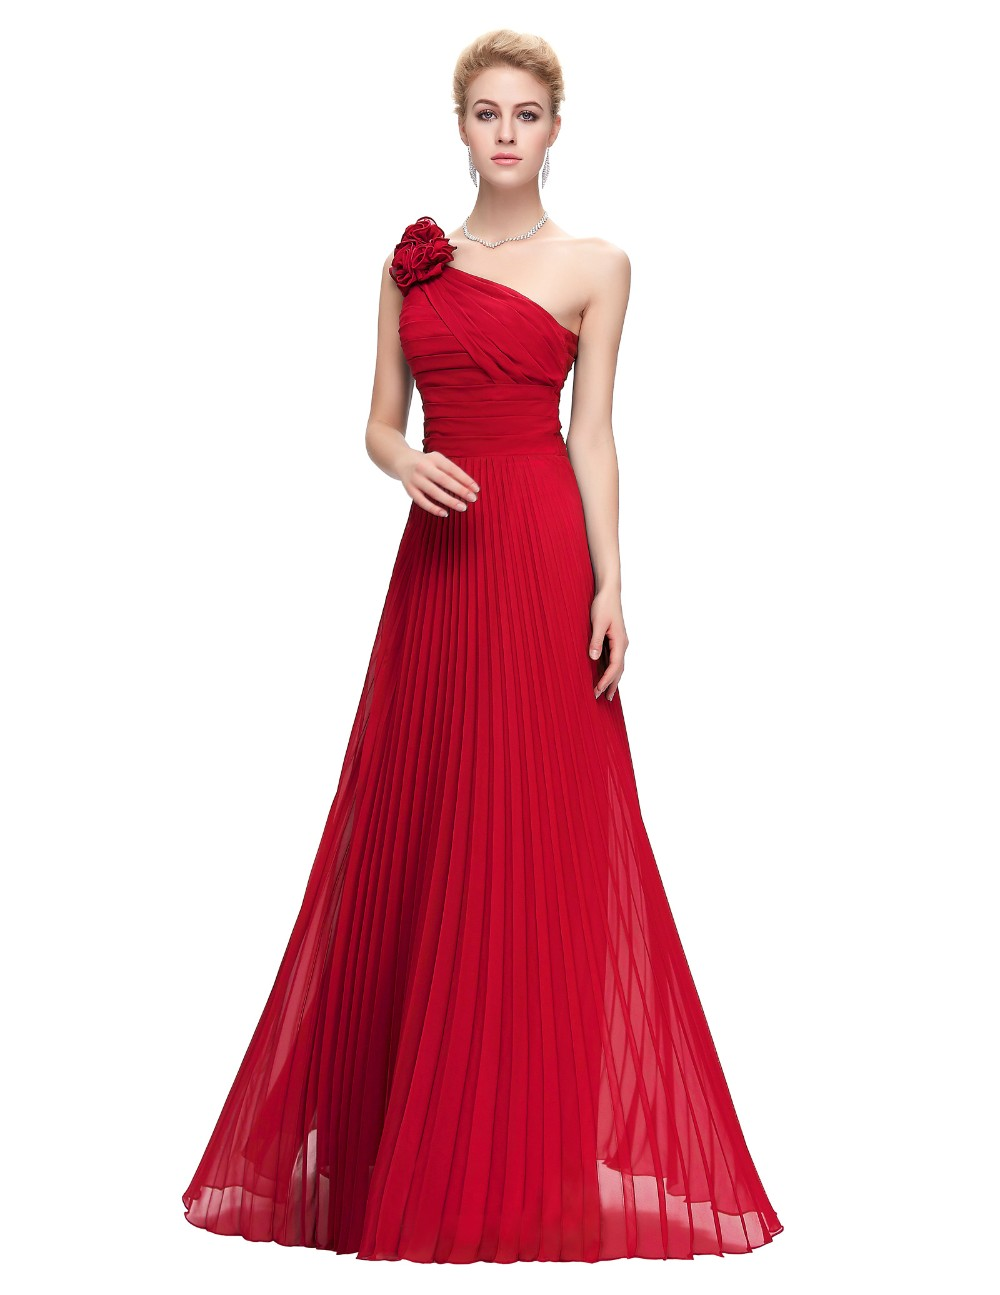 Grace Karin Chiffon Long Evening Dress One Shoulder Pleated Red Green Purple Royal Blue Formal Evening Dress Party Gowns 2018 12